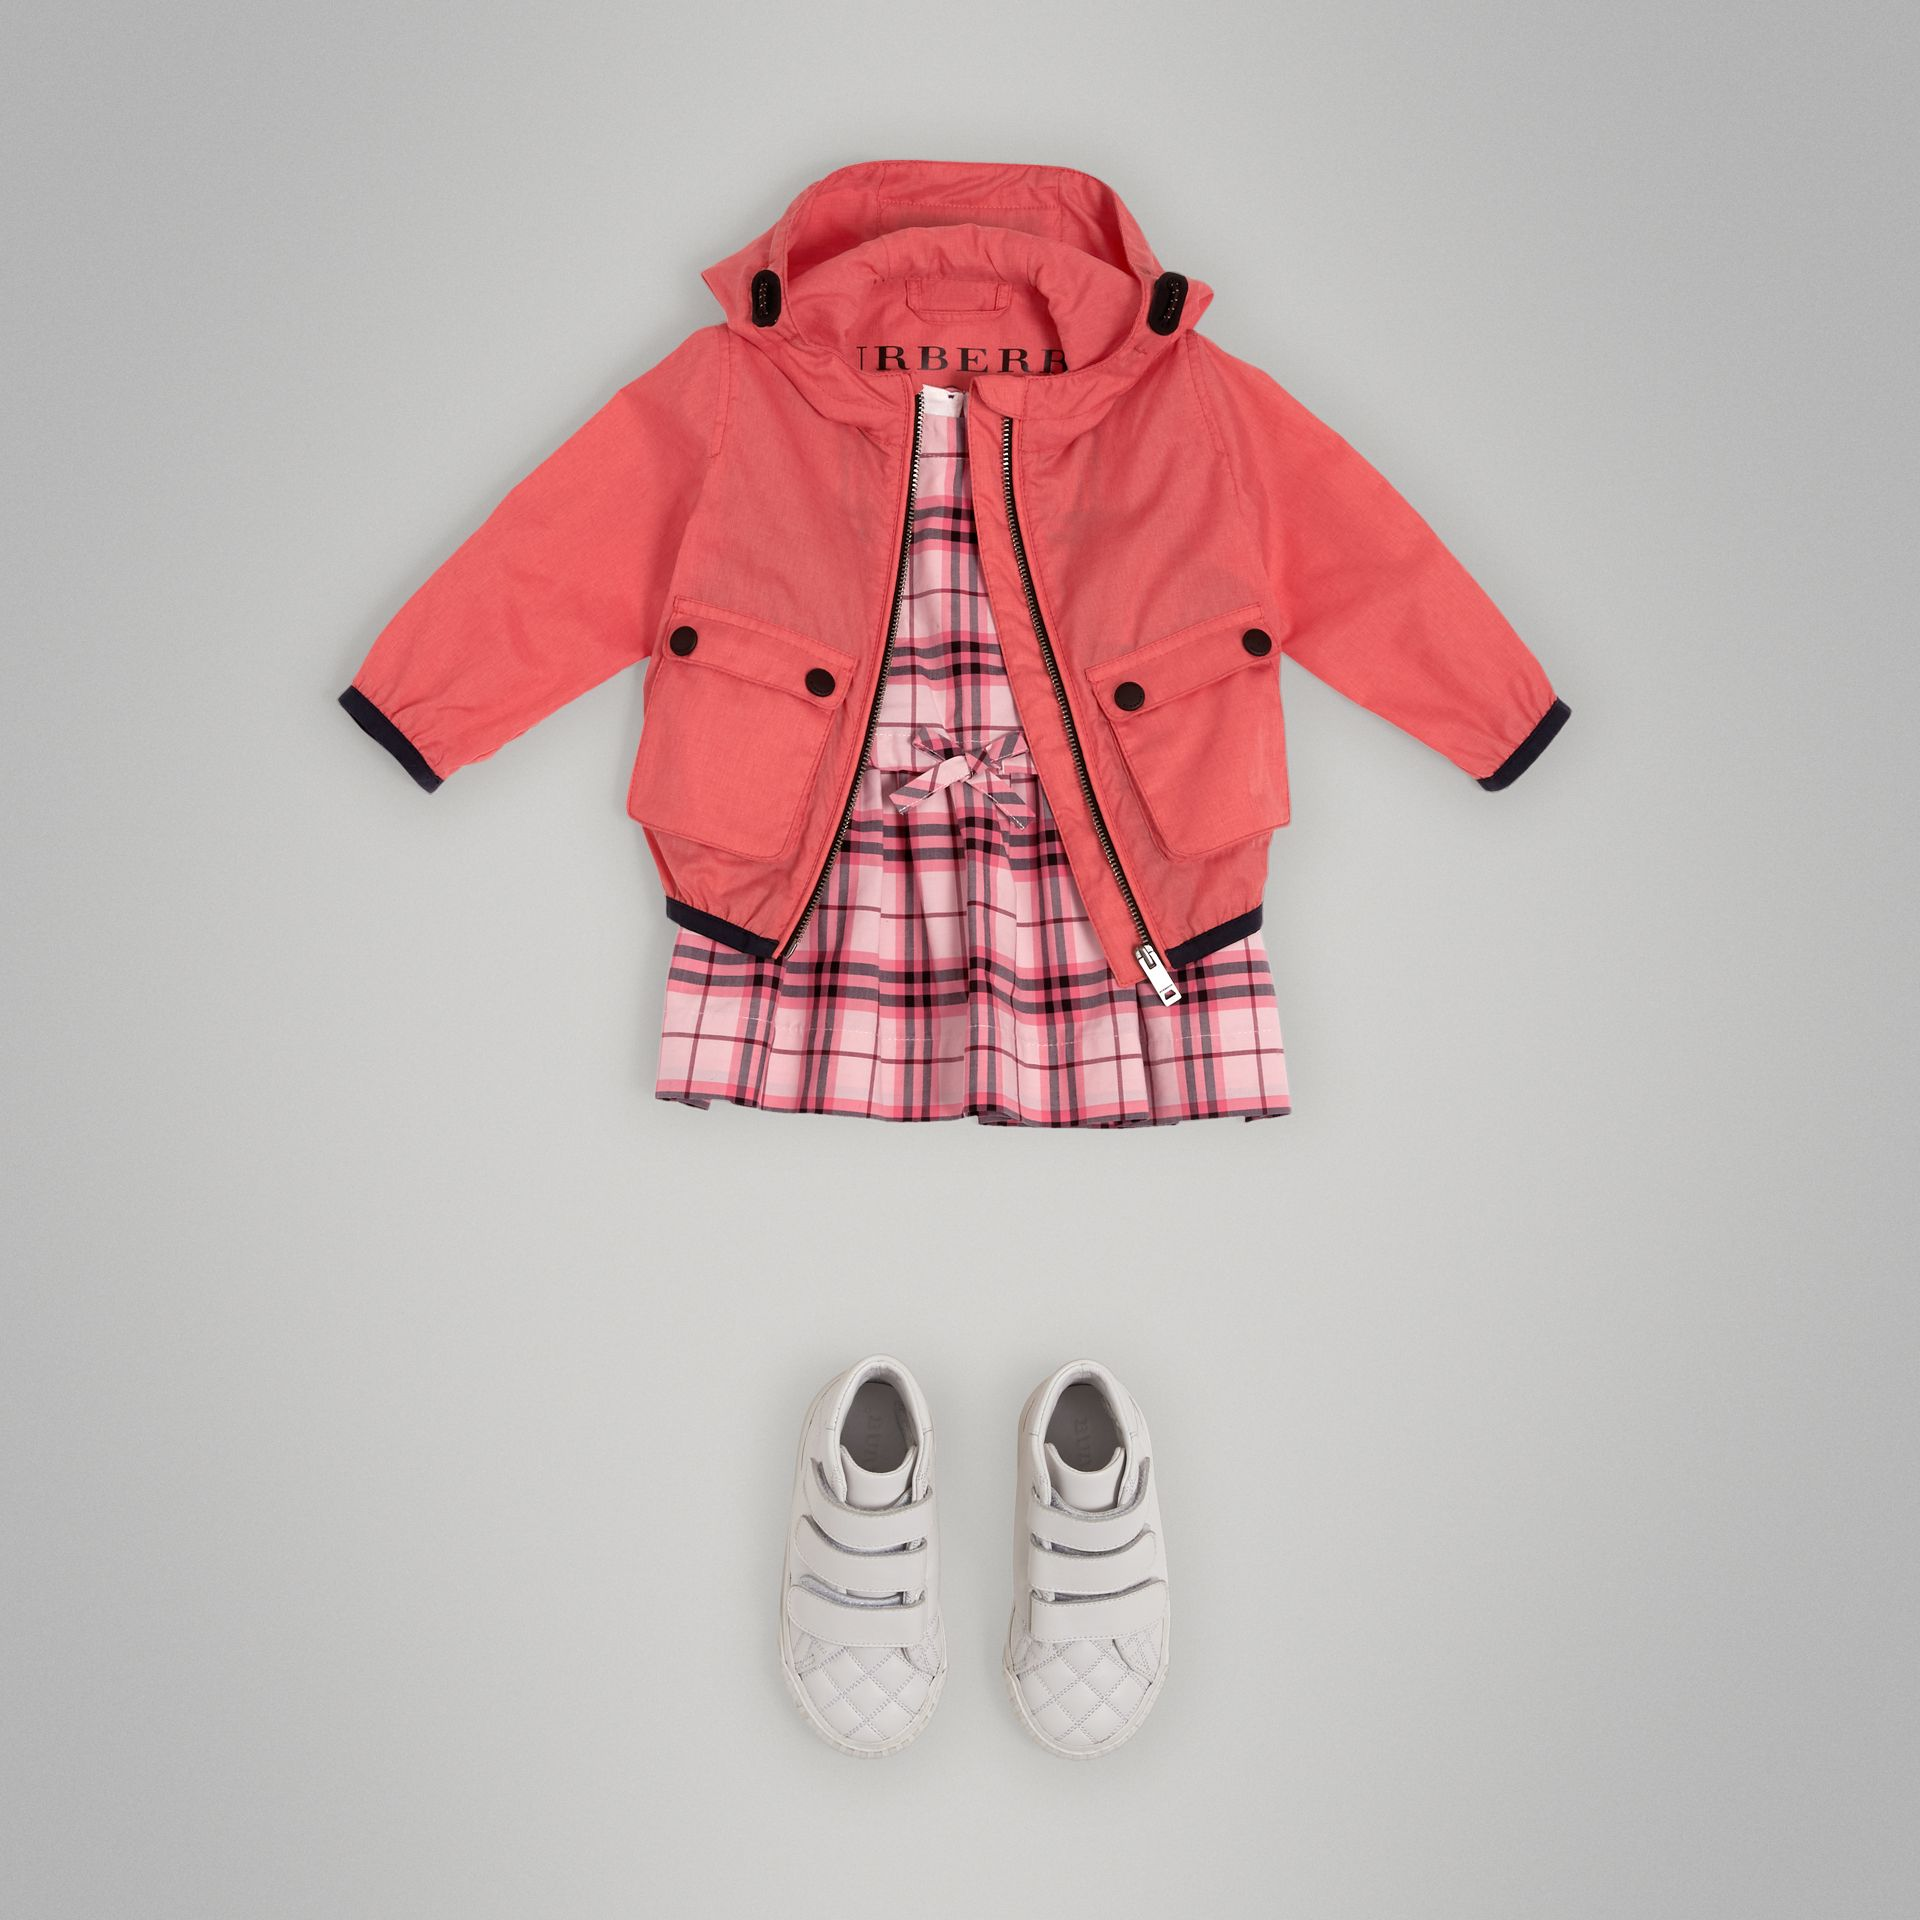 Showerproof Hooded Jacket in Bright Coral Pink - Children | Burberry - gallery image 2